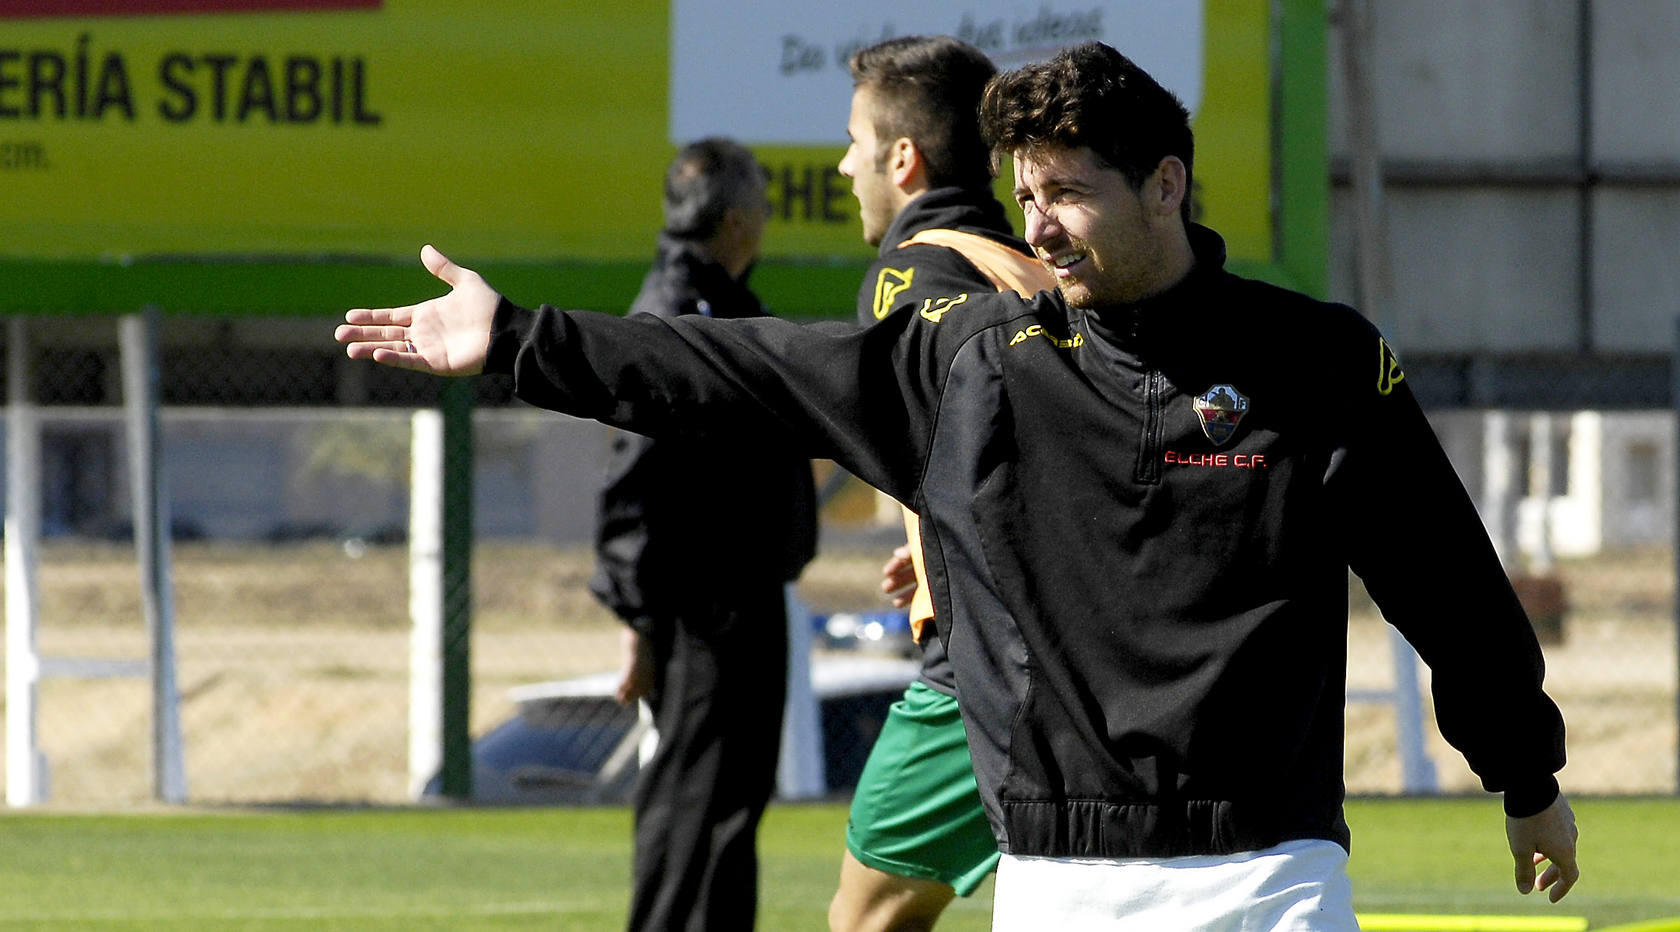 Entrenamiento del Elche C.F. en el campo anexo al Mart&iacute;nez Valero